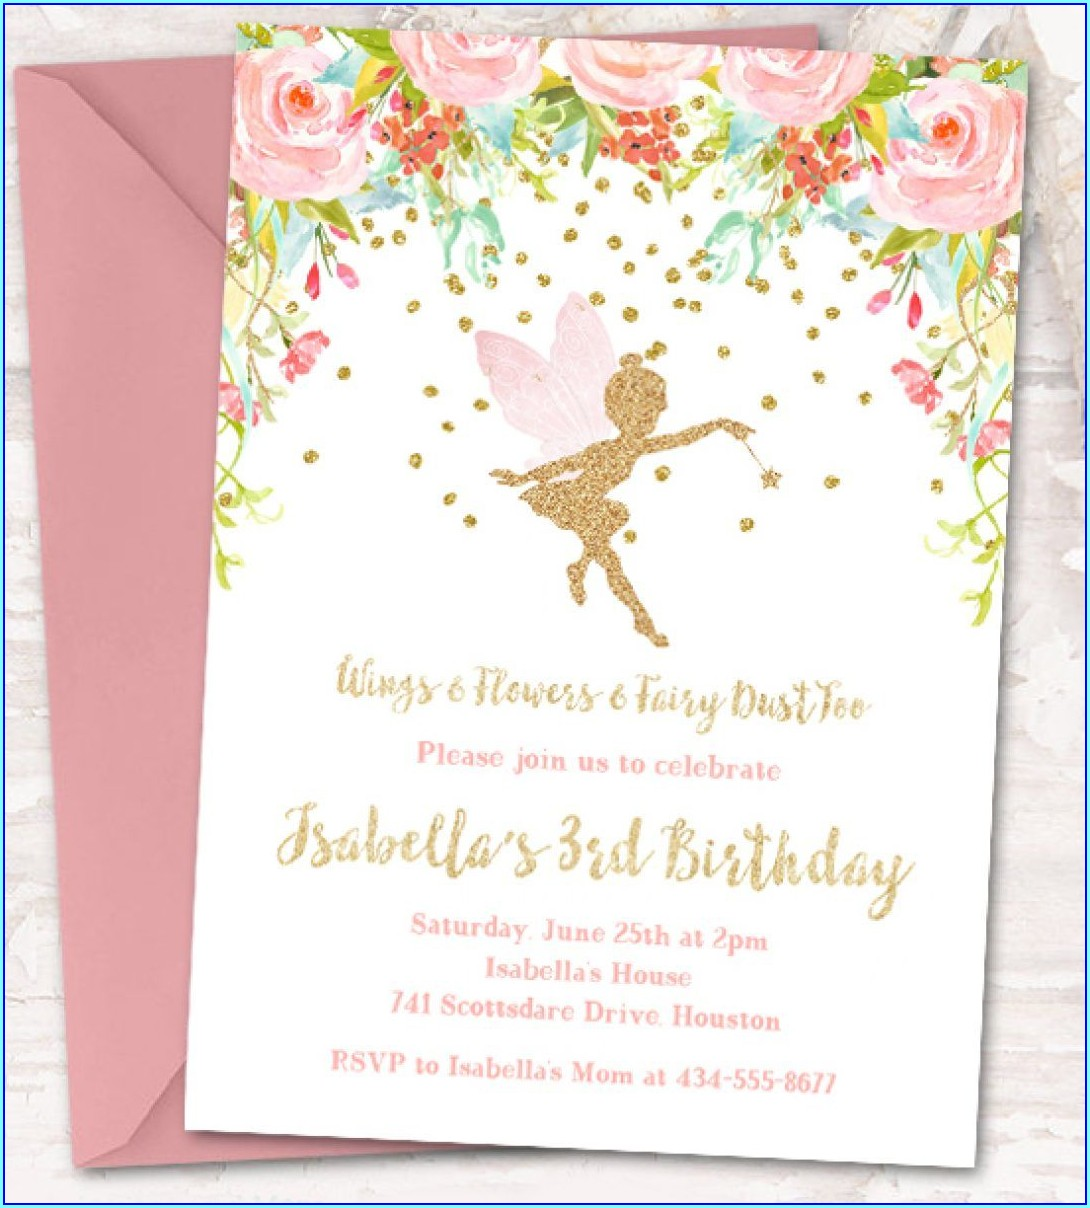 Blank Fairytale Invitation Template Free